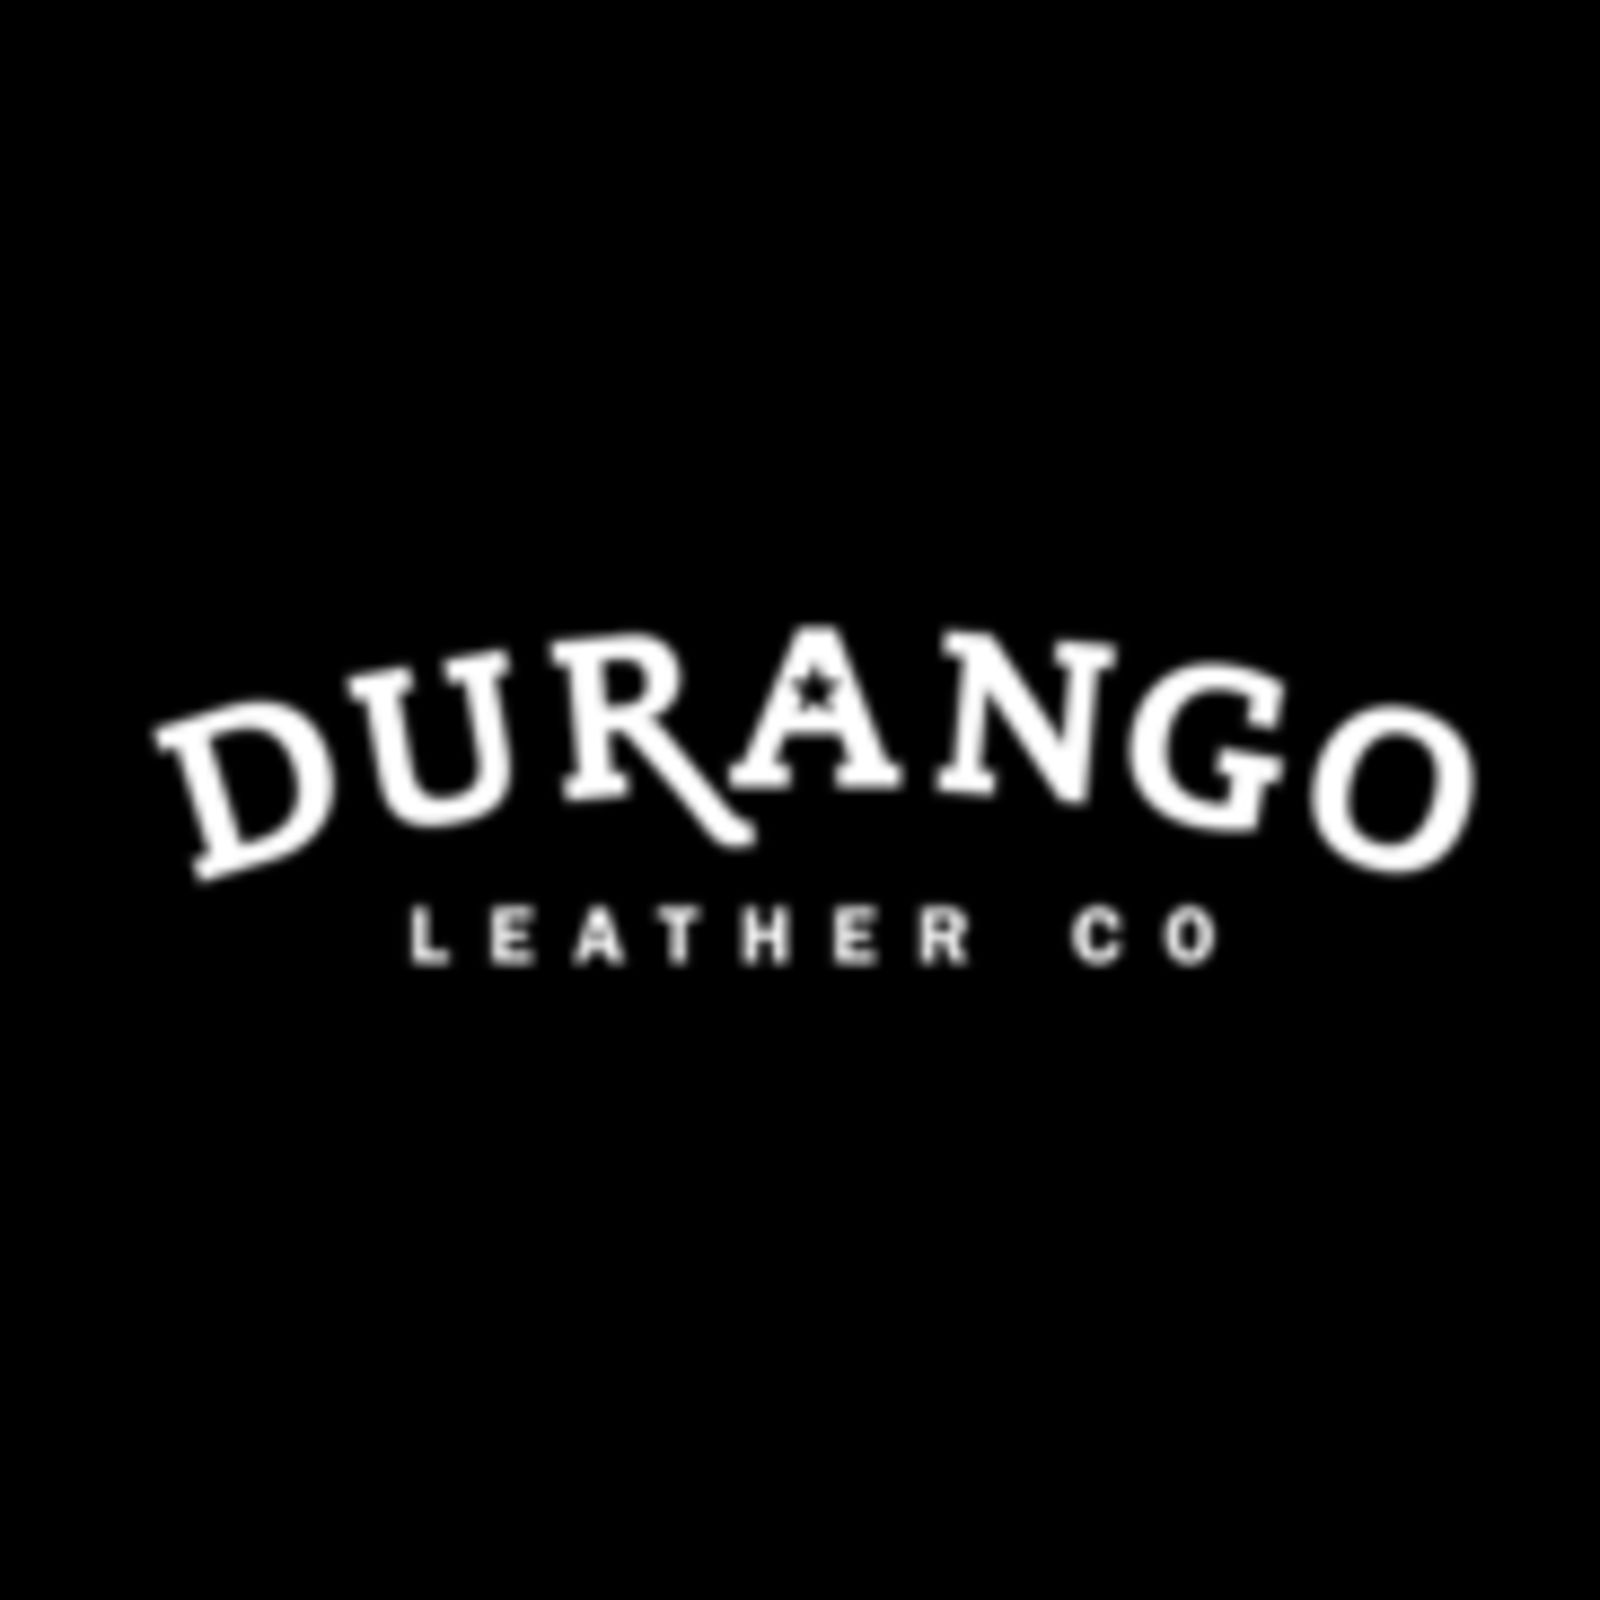 DURANGO LEATHER CO.